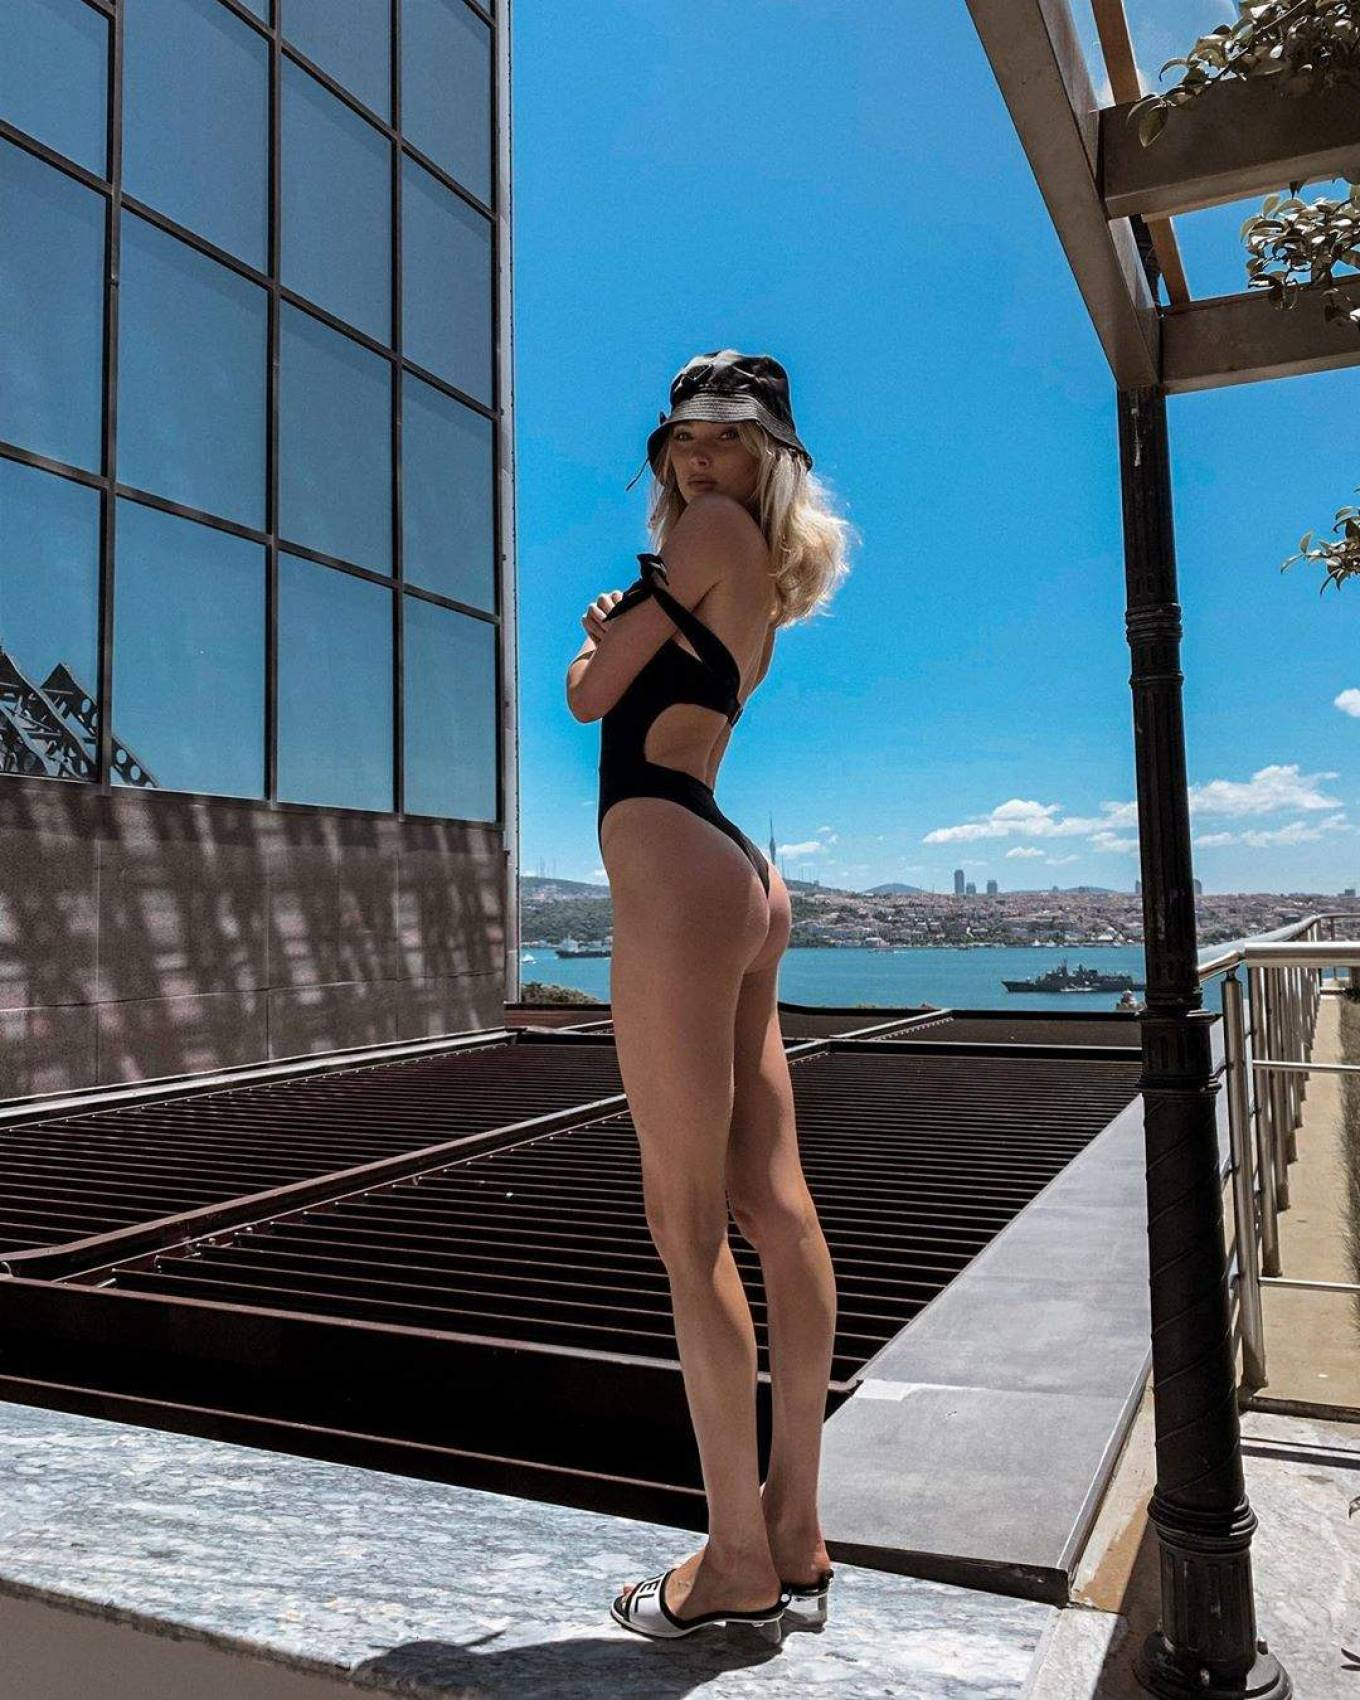 Elsa Hosk in Bikini - Photoshoot